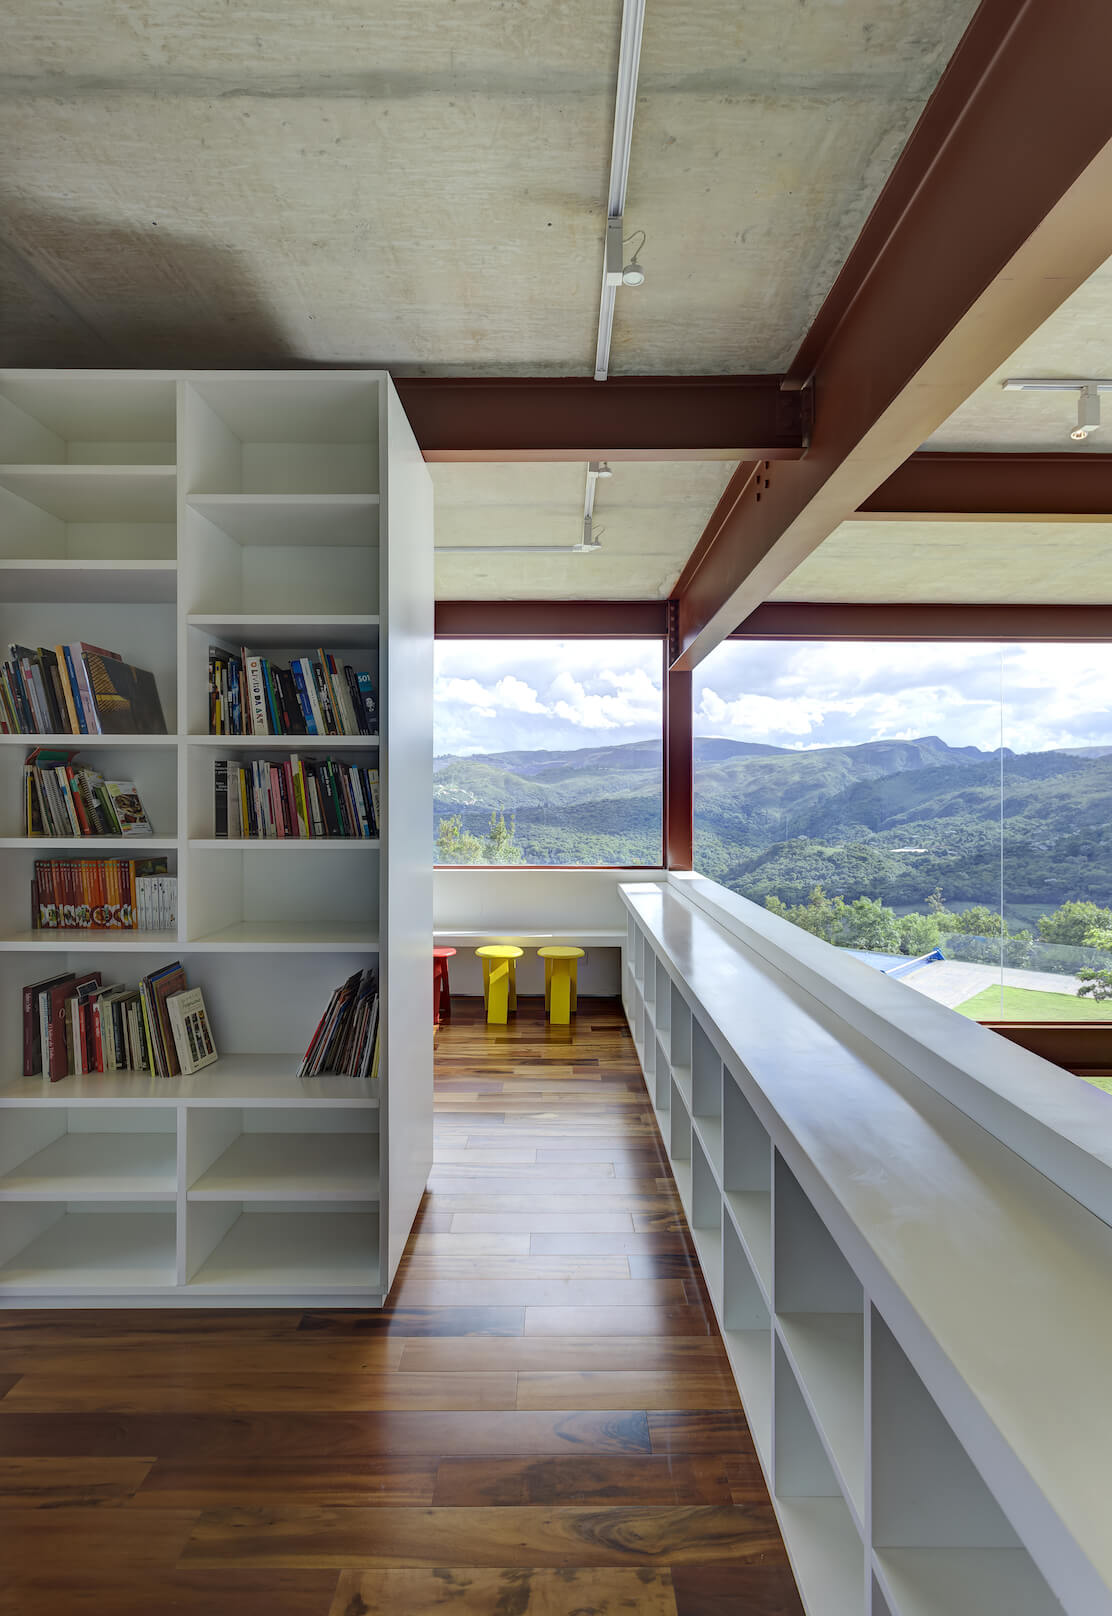 Inner edge of the library space, with more white wood shelving built into the dividing wall overlooking the open living room space at right. Color dots the neutral and natural tones via small wooden seats at far end.